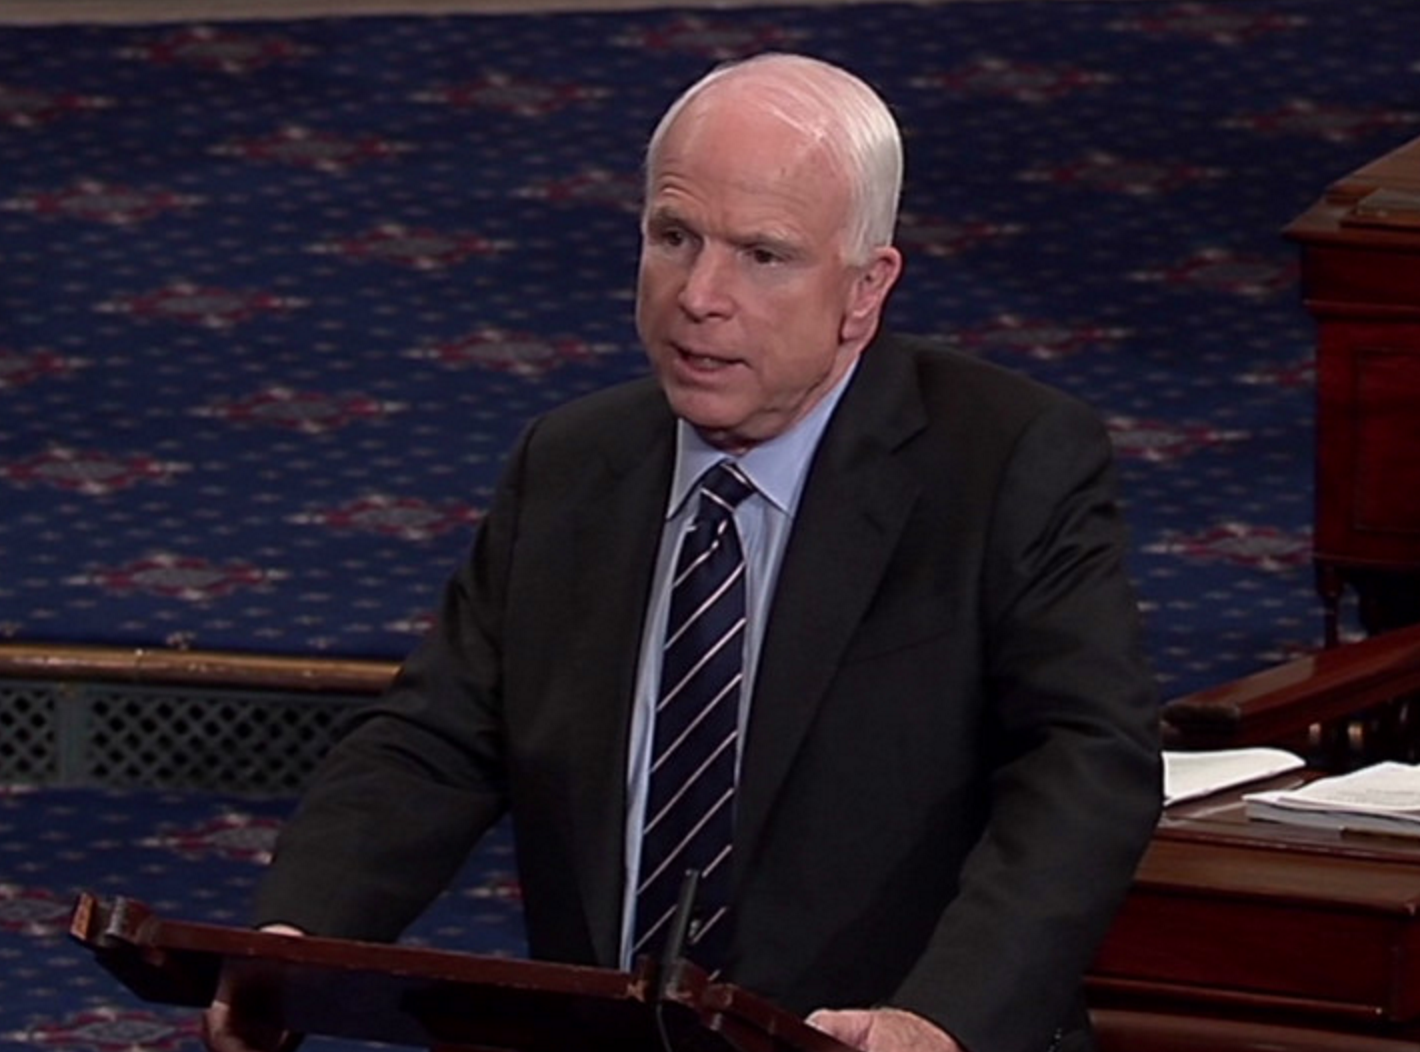 John McCain Announces He Will Oppose Trump's Pick For Management and Budget